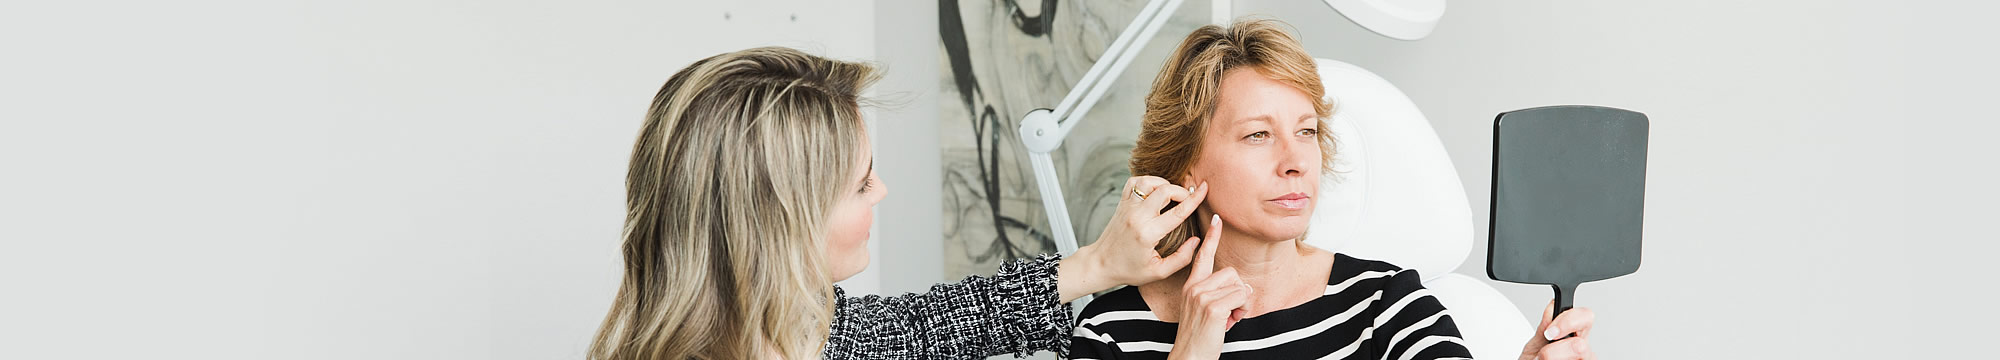 Dr. Maria with a patient